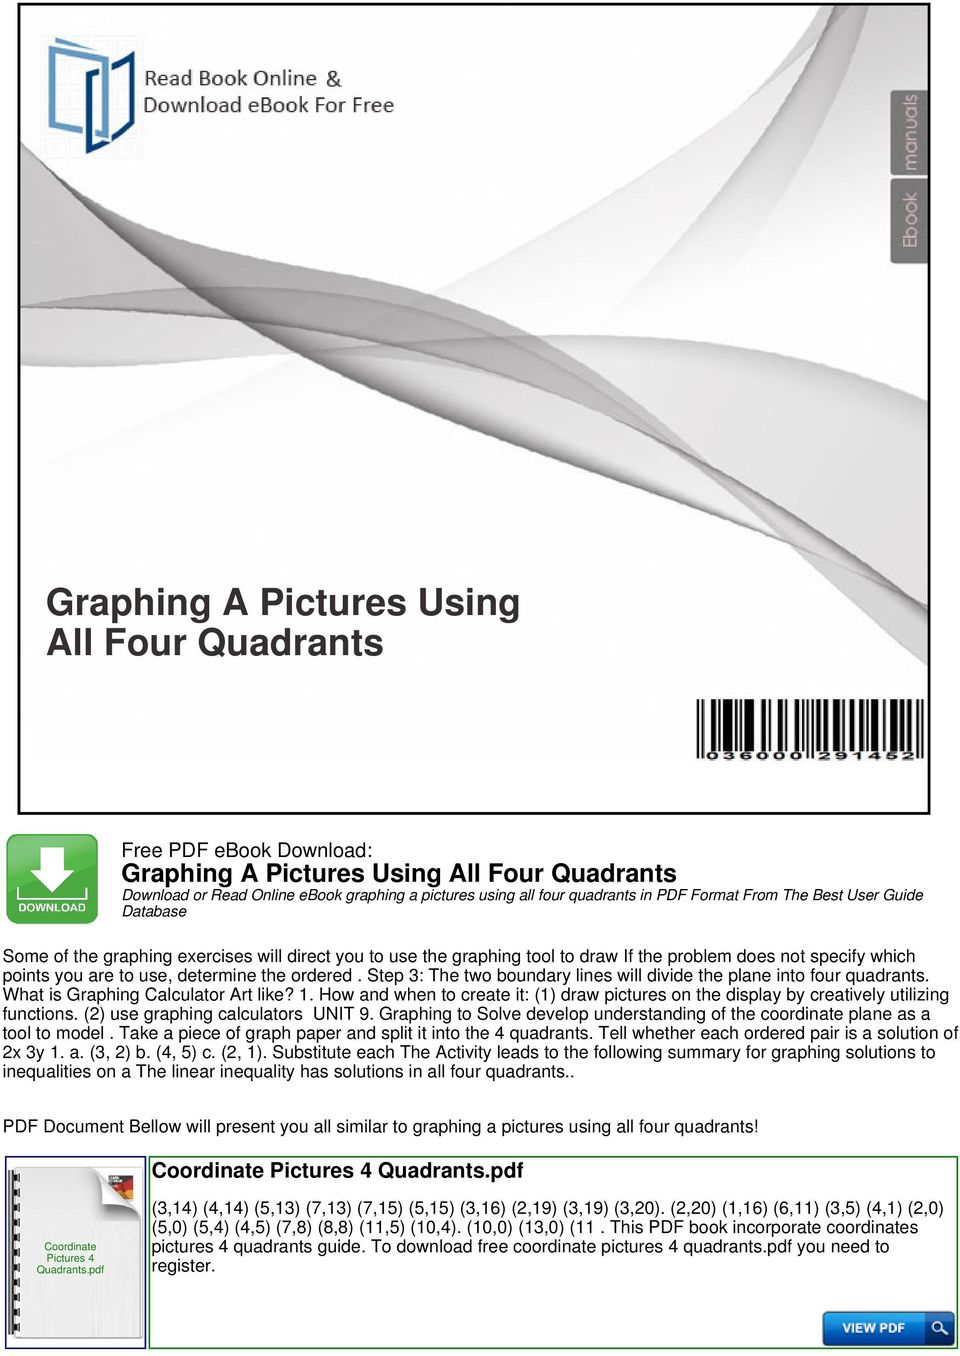 graphing a pictures using all four quadrants pdf